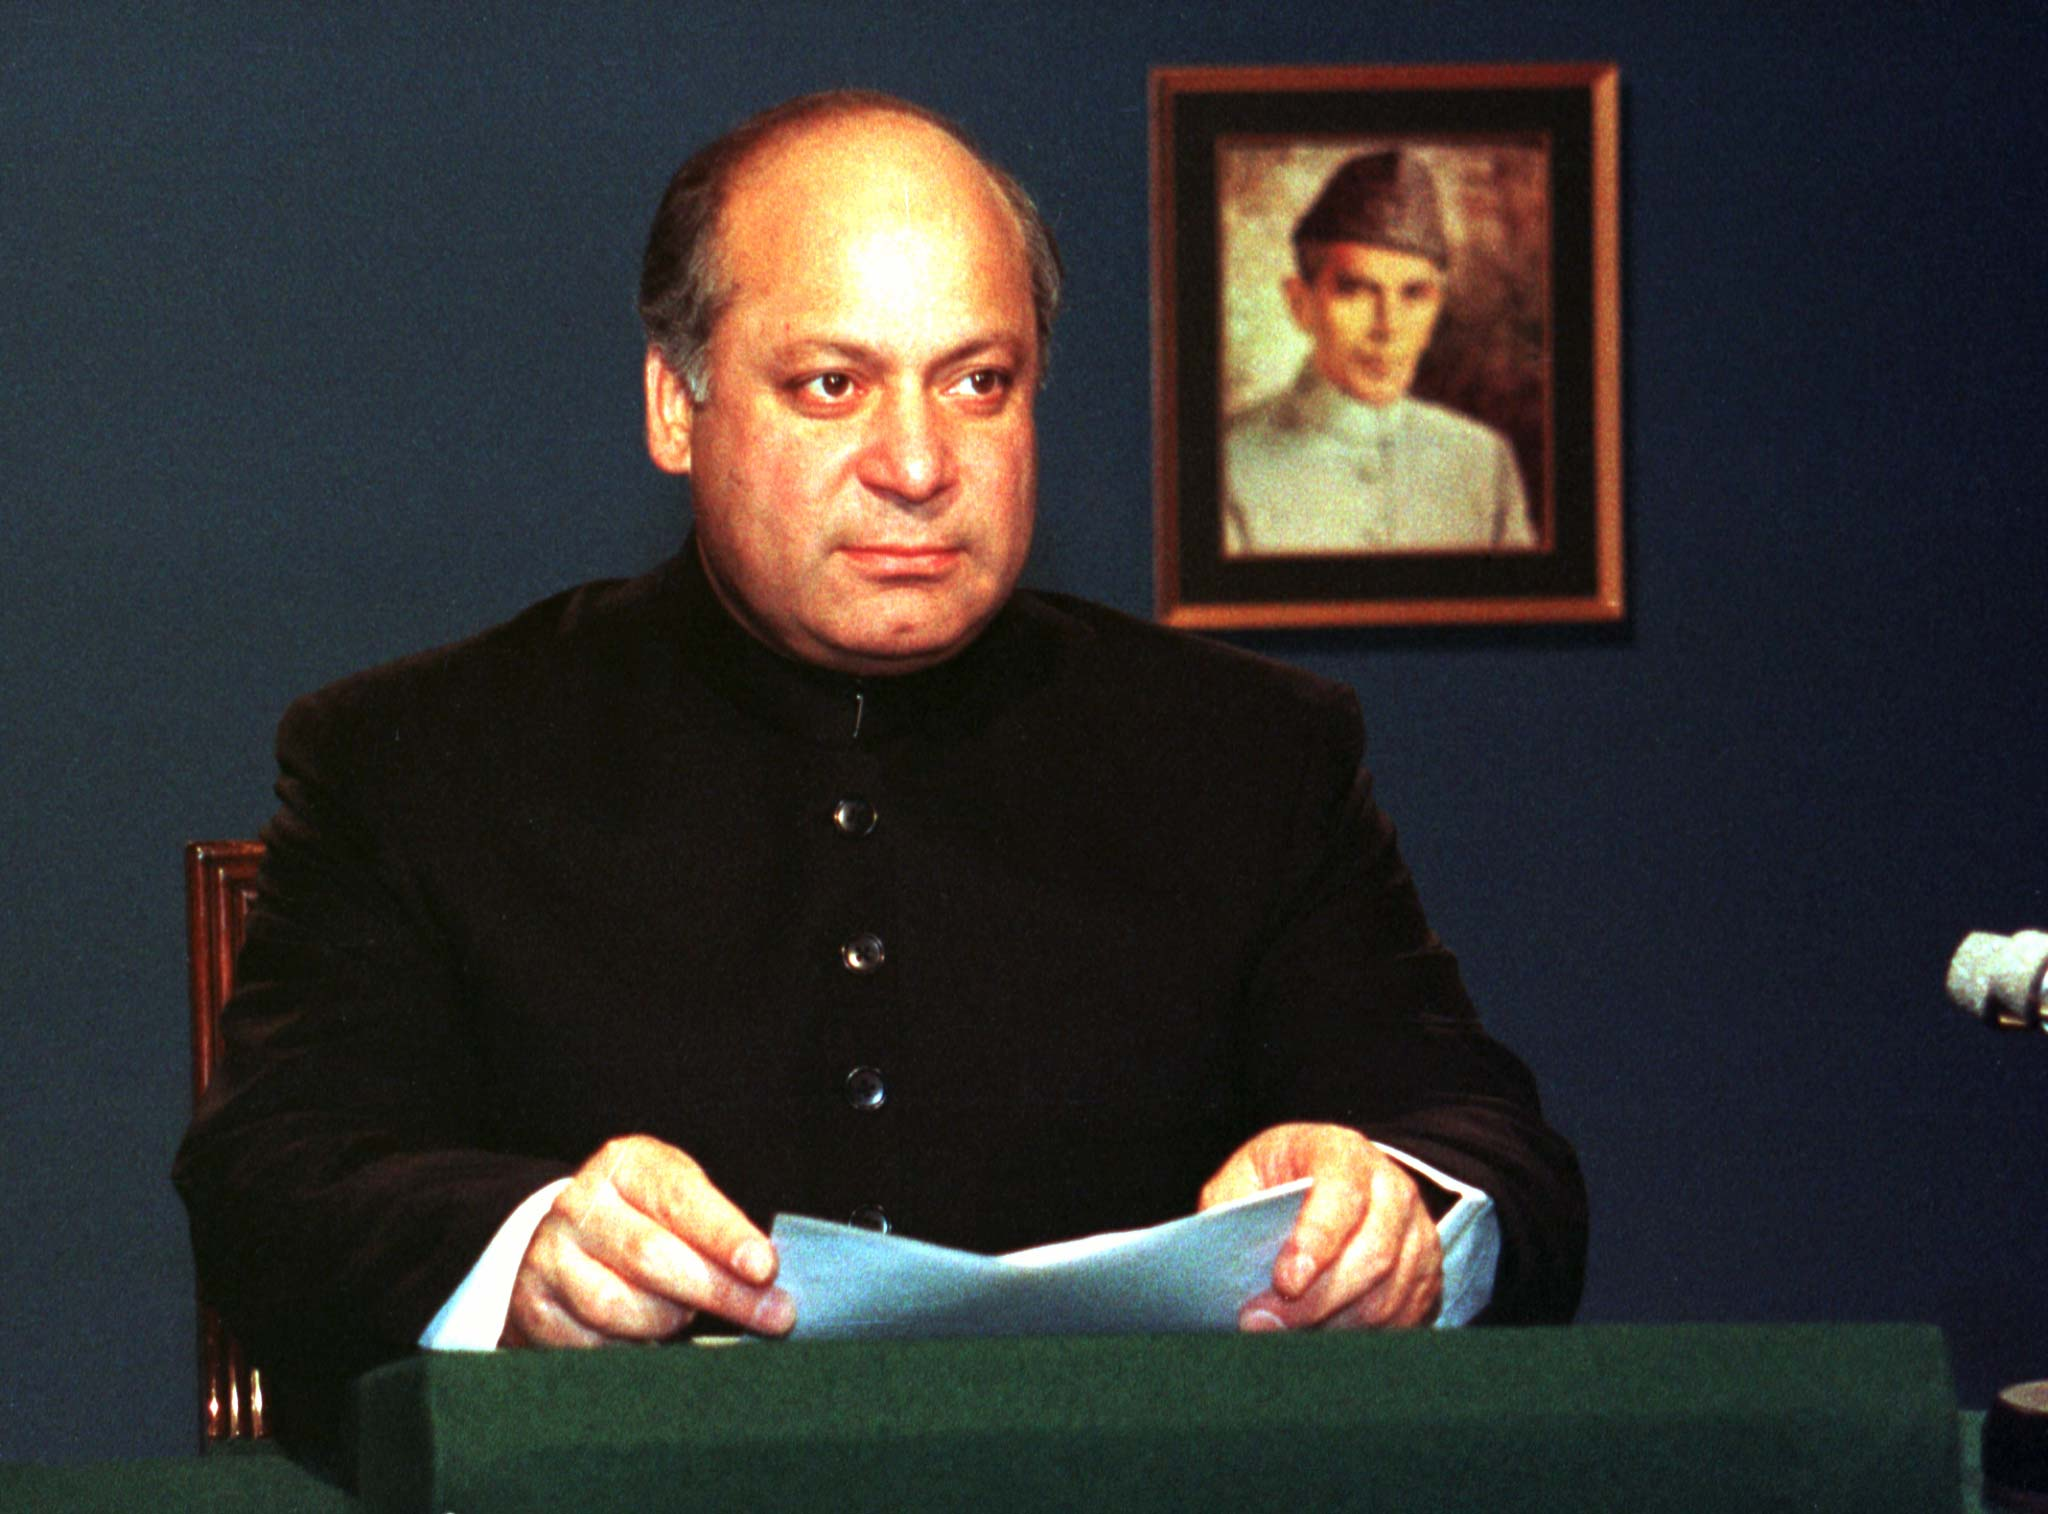 Prime Minister Nawaz Sharif sits in Islamabad July 12 prior to the recording of his address to the nation on the Kashmir showdown with India. Sharif explained the military disengagement to end the worst military standoff between Pakistan and India in 30 years. — Photo by Reuters